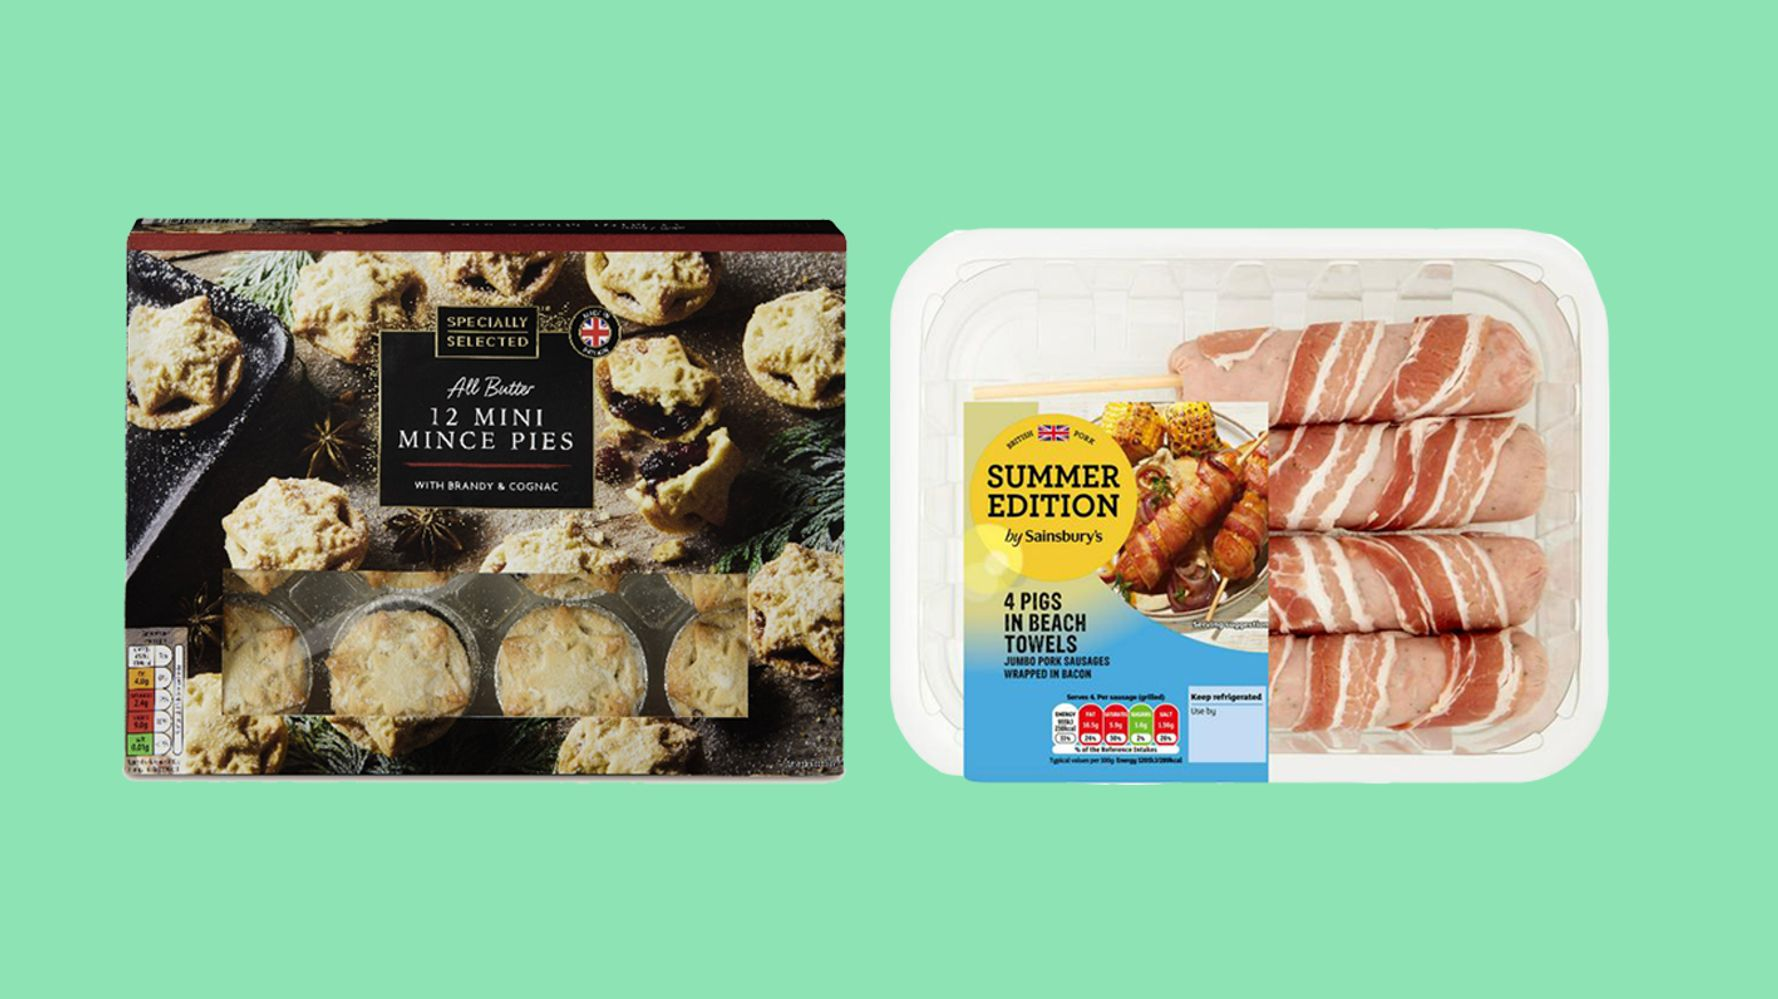 Mince Pies In June, Pigs In 'Beach' Blankets – It's A No From Us